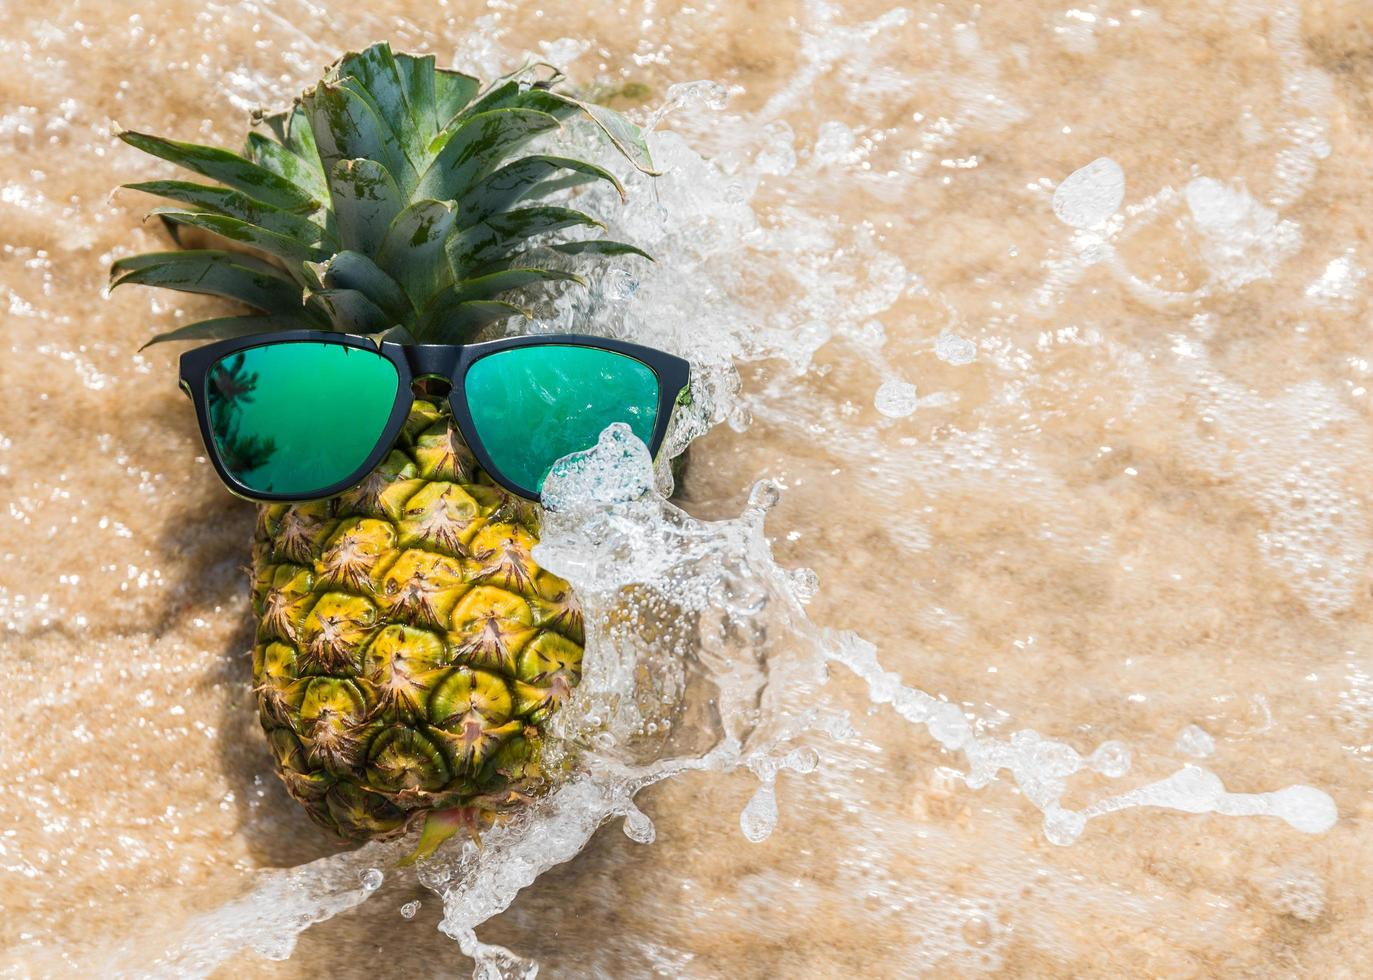 Pineapple and sunglasses splashed with waves photo